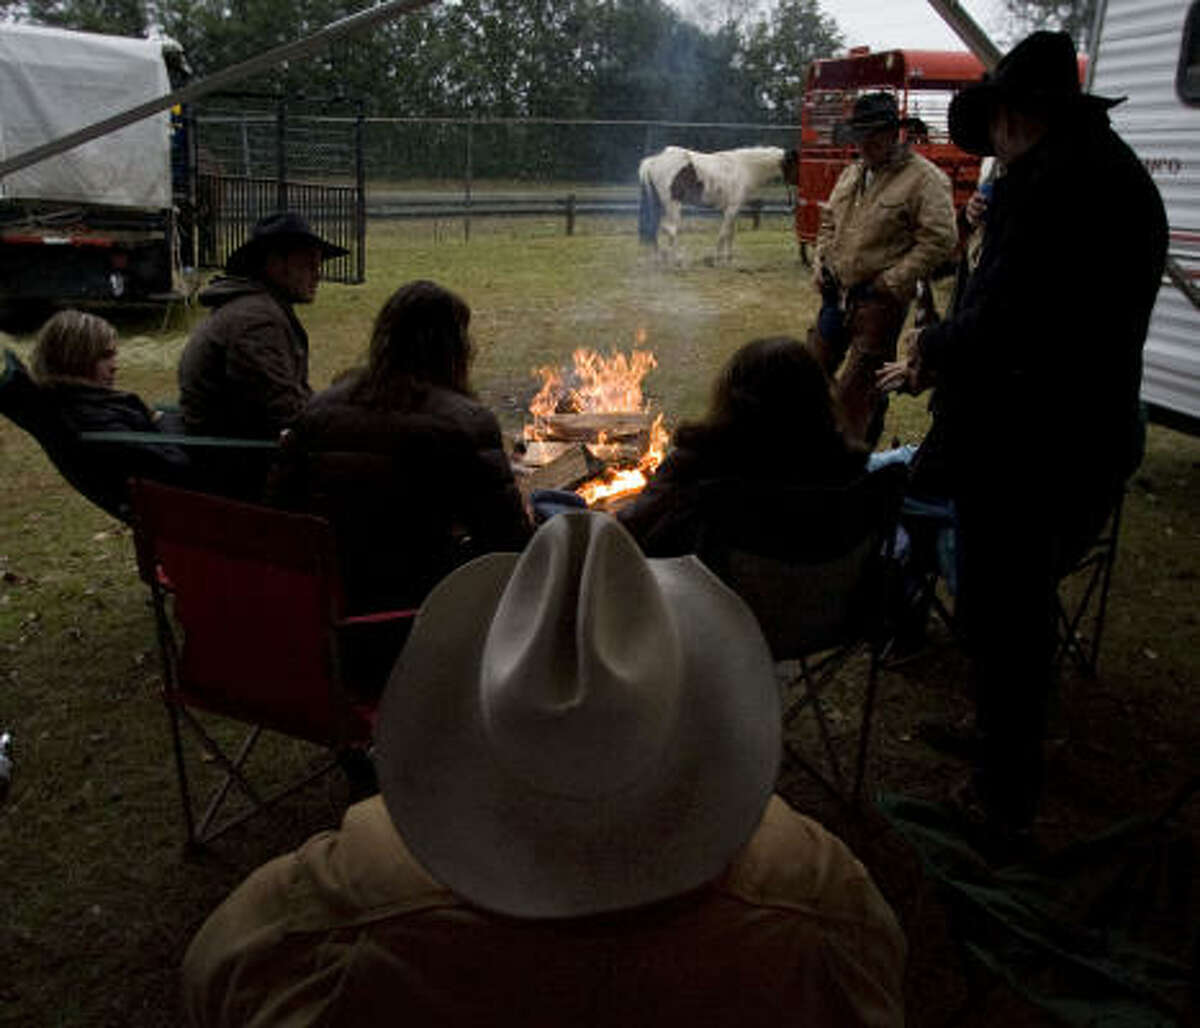 Members of the Sam Houston Trail Ride gather around a fire at the groups overnight stop at Spring Creek Park Tuesday, Feb. 23, 2010, in Tomball.